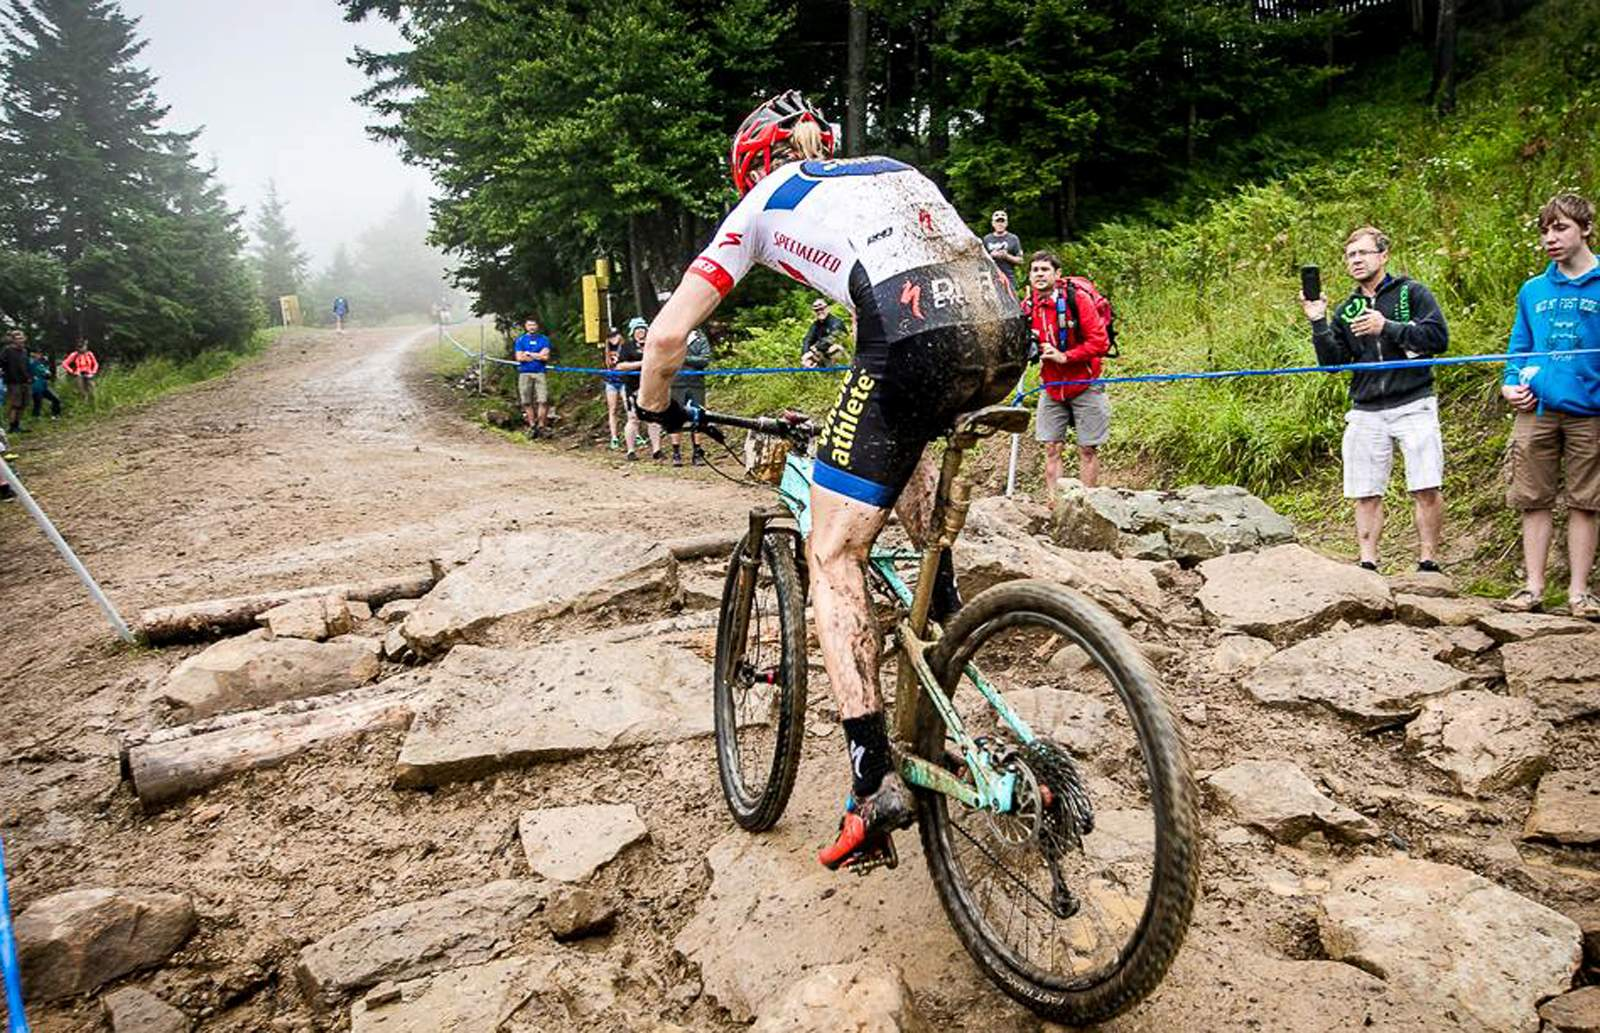 Quinn Simmons wins junior cross country mountain bike title